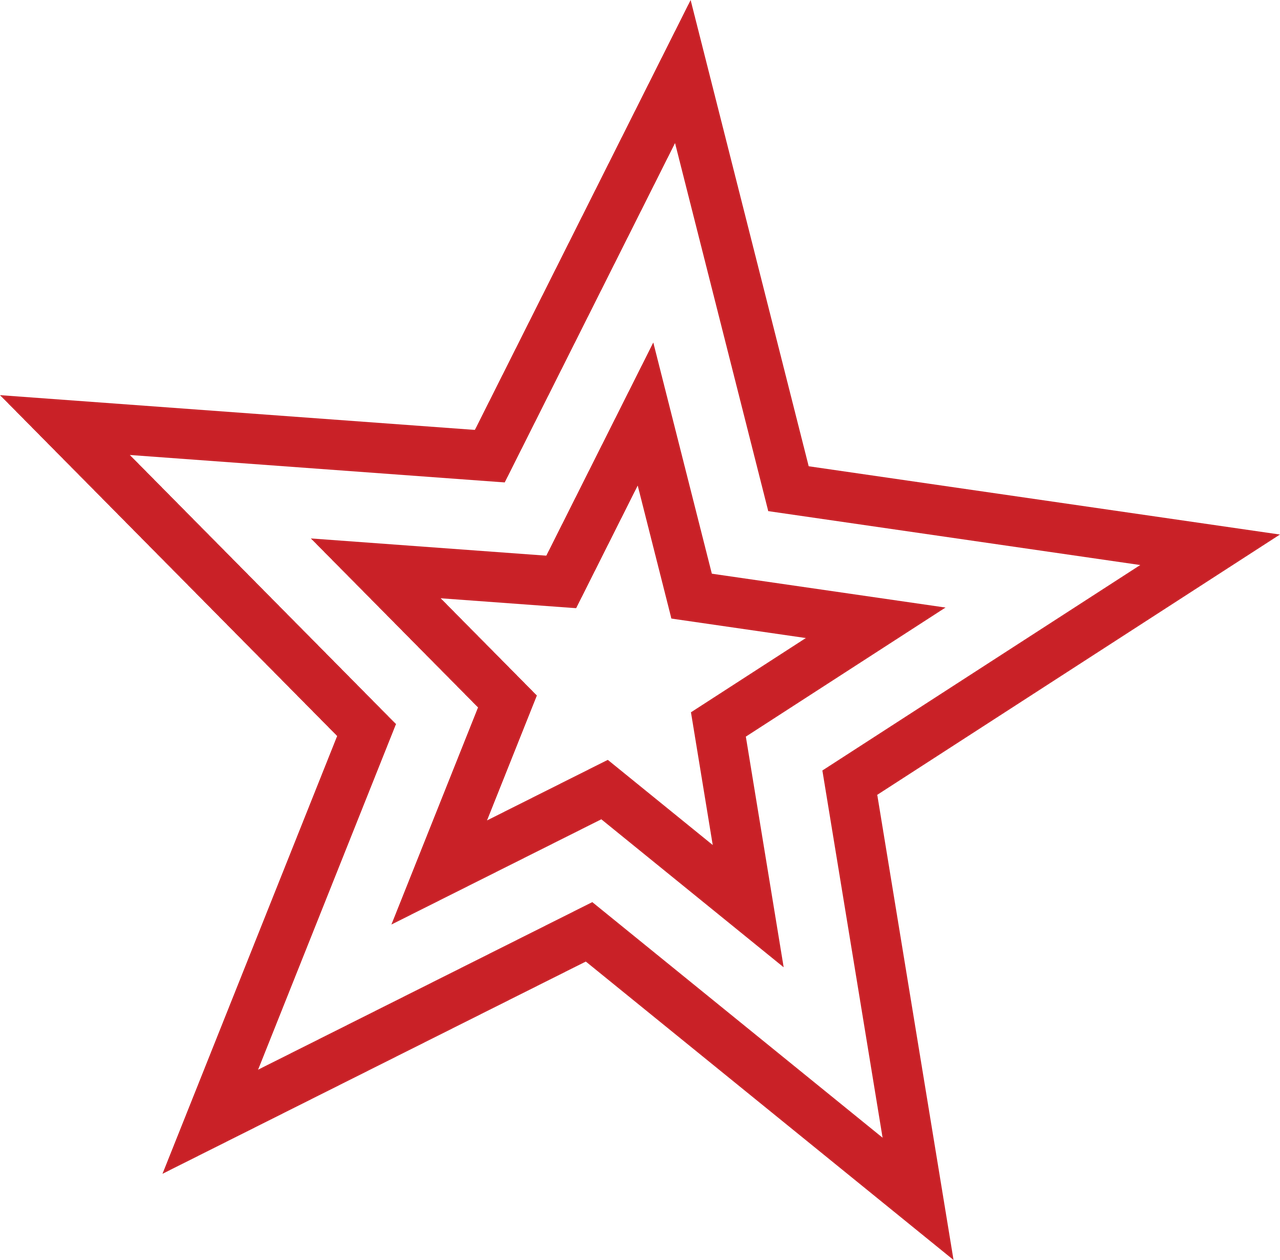 Star SVG Cut File